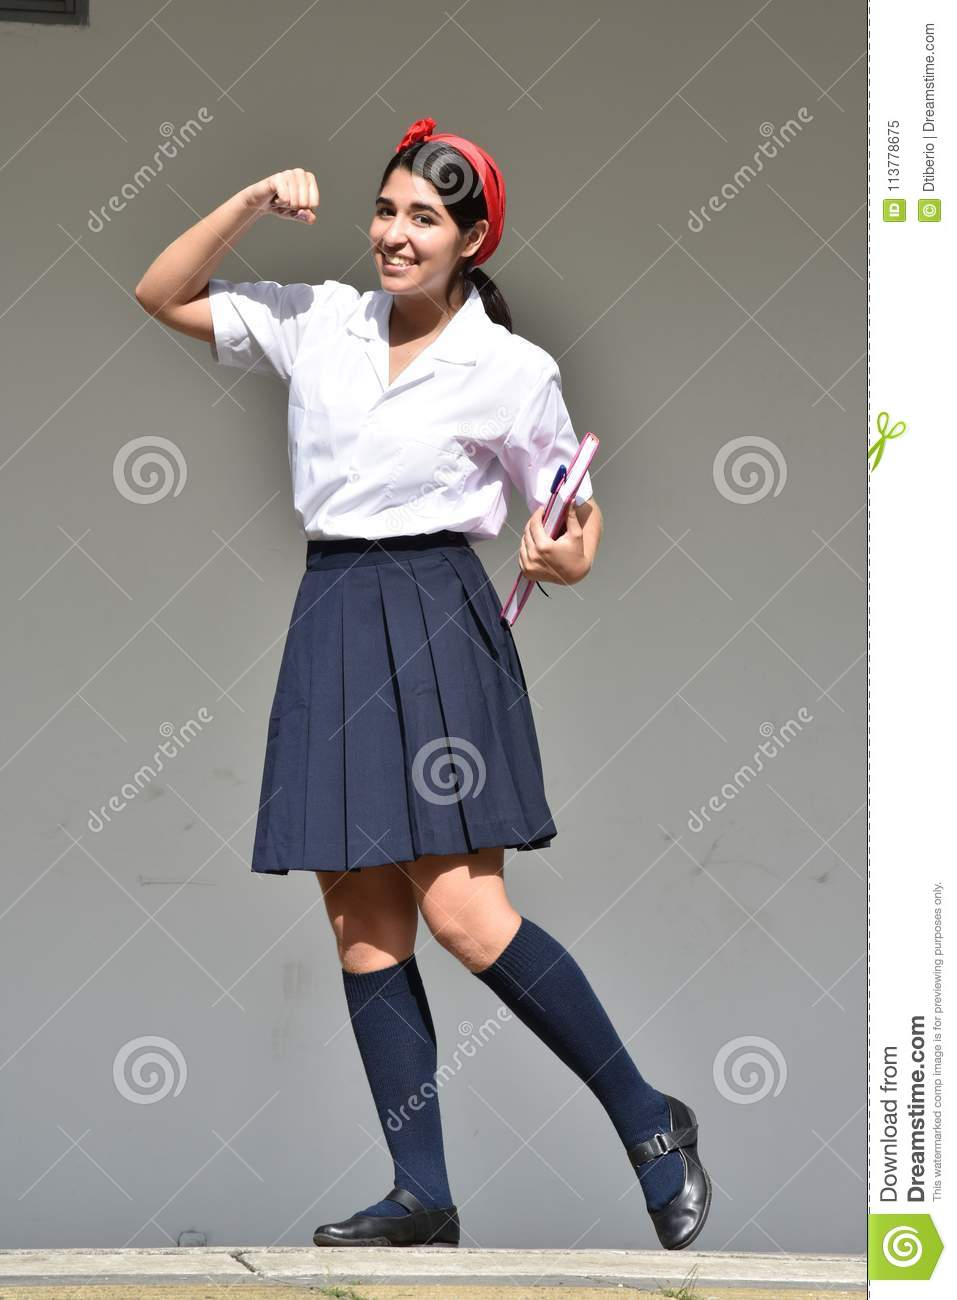 Female School Girl Flexing Muscles Stock Image - Image of ...